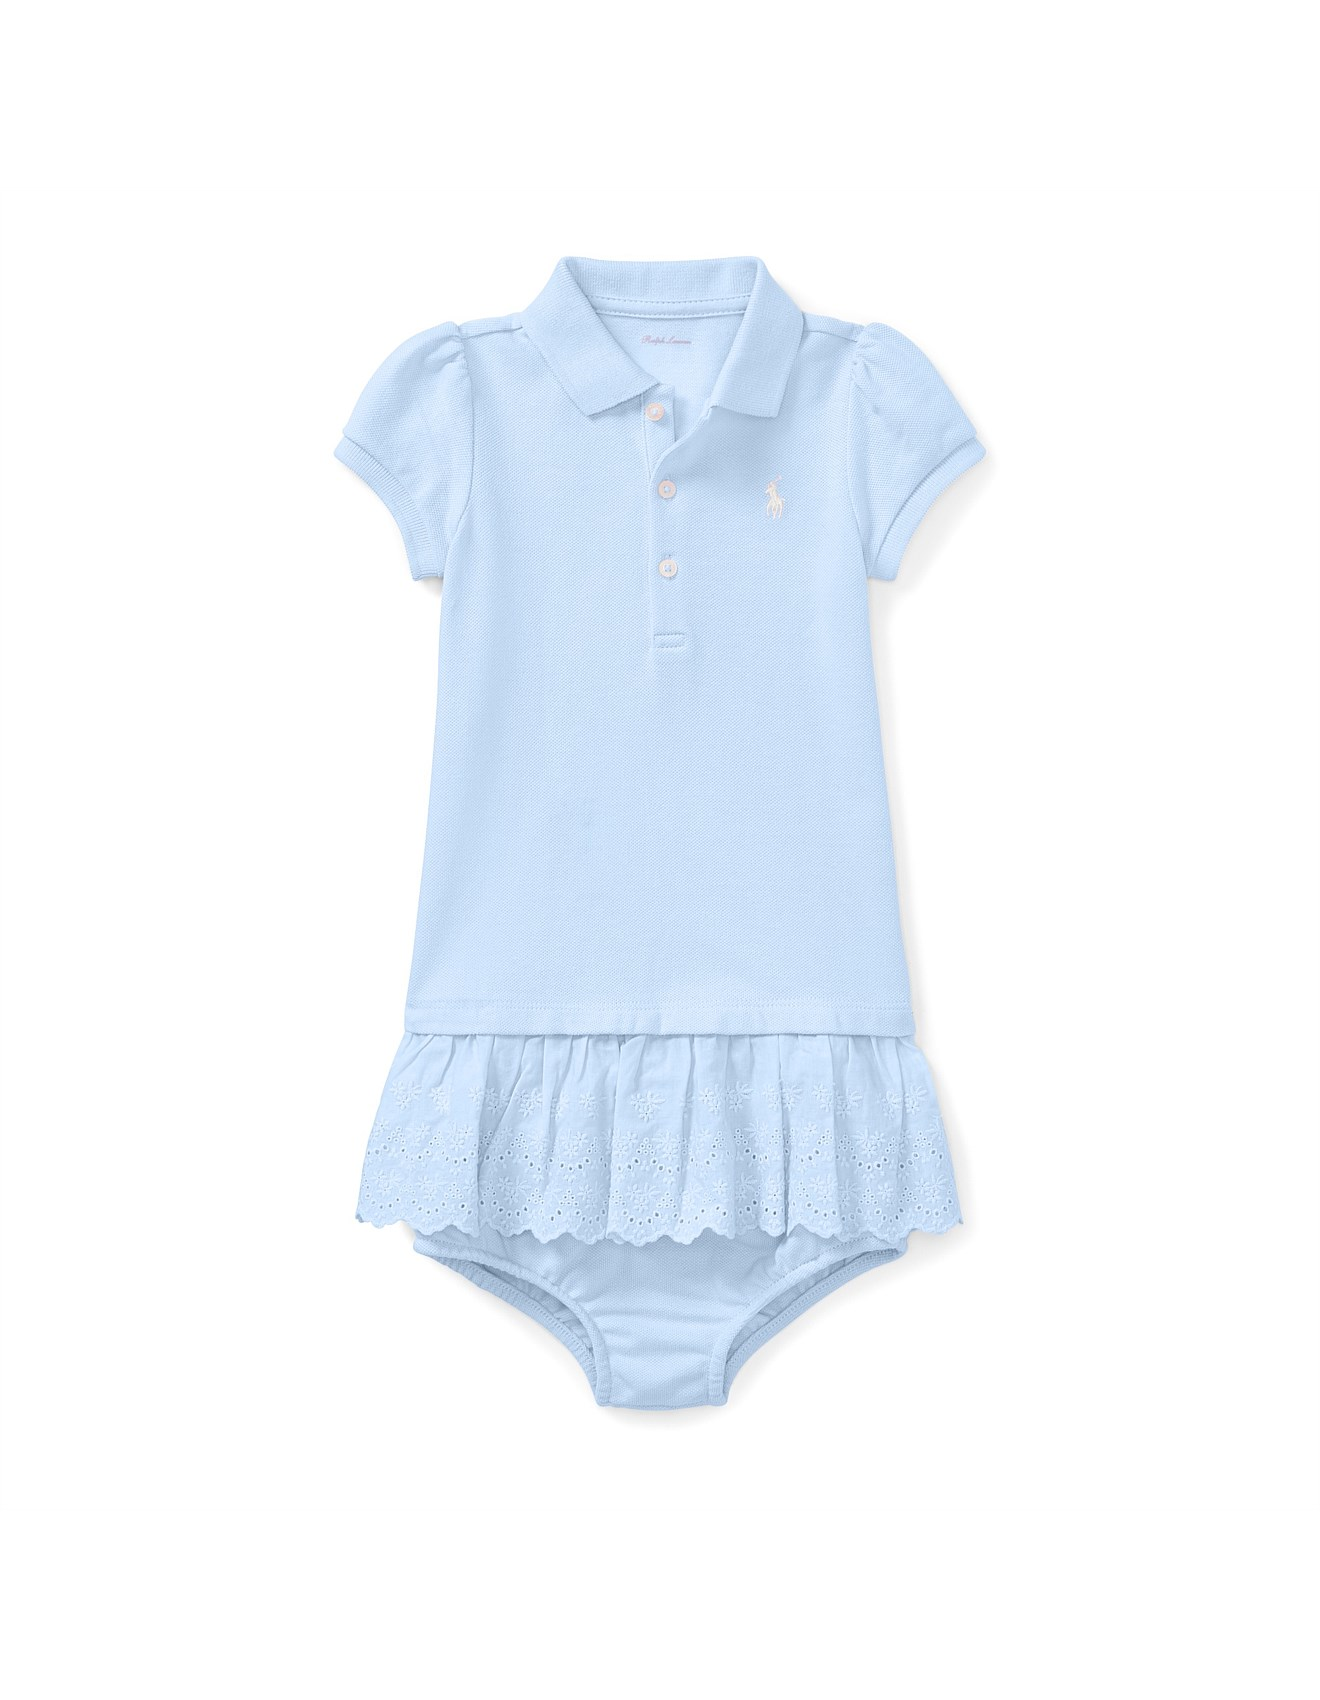 bbdb190940 Eyelet Polo Dress & Bloomer(6-24 Months)